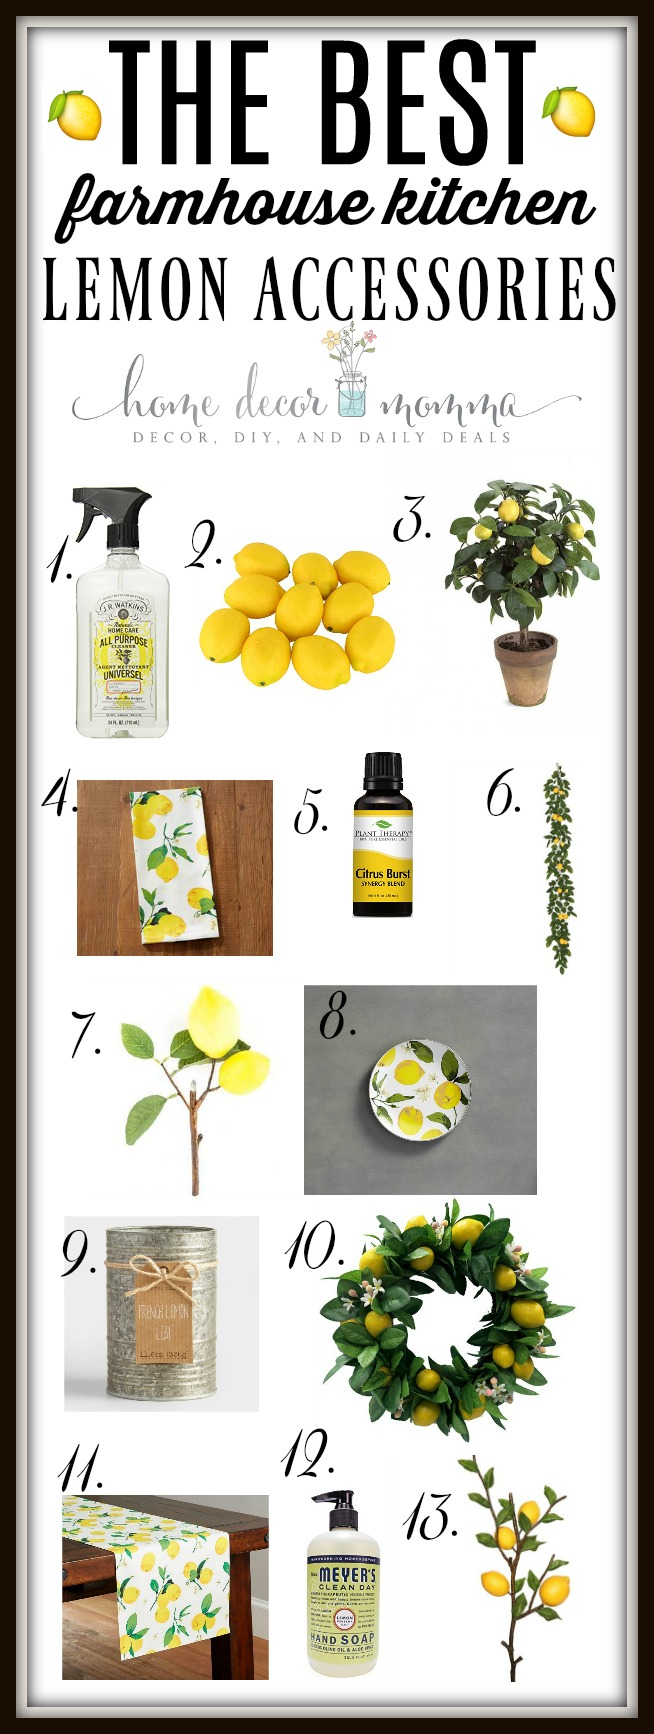 ... Lemon Accessories That I Use In My Kitchen For Decorating And Cleaning!  A Few Of These Are Still On My Wish List But On Sale Now So I Had To Share!!